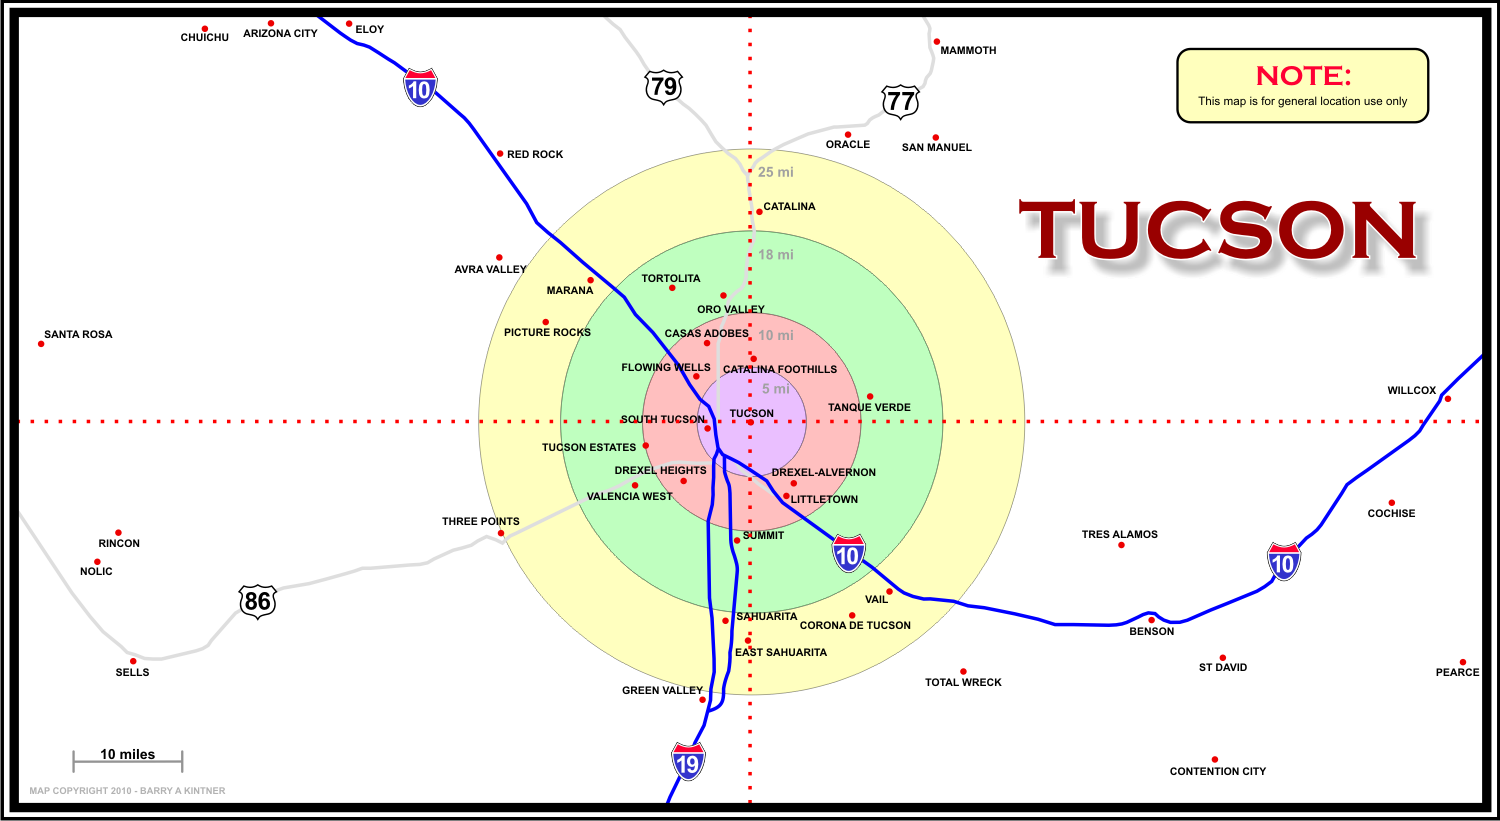 Map of Tucson, Arizona area - A2Z Computer Works